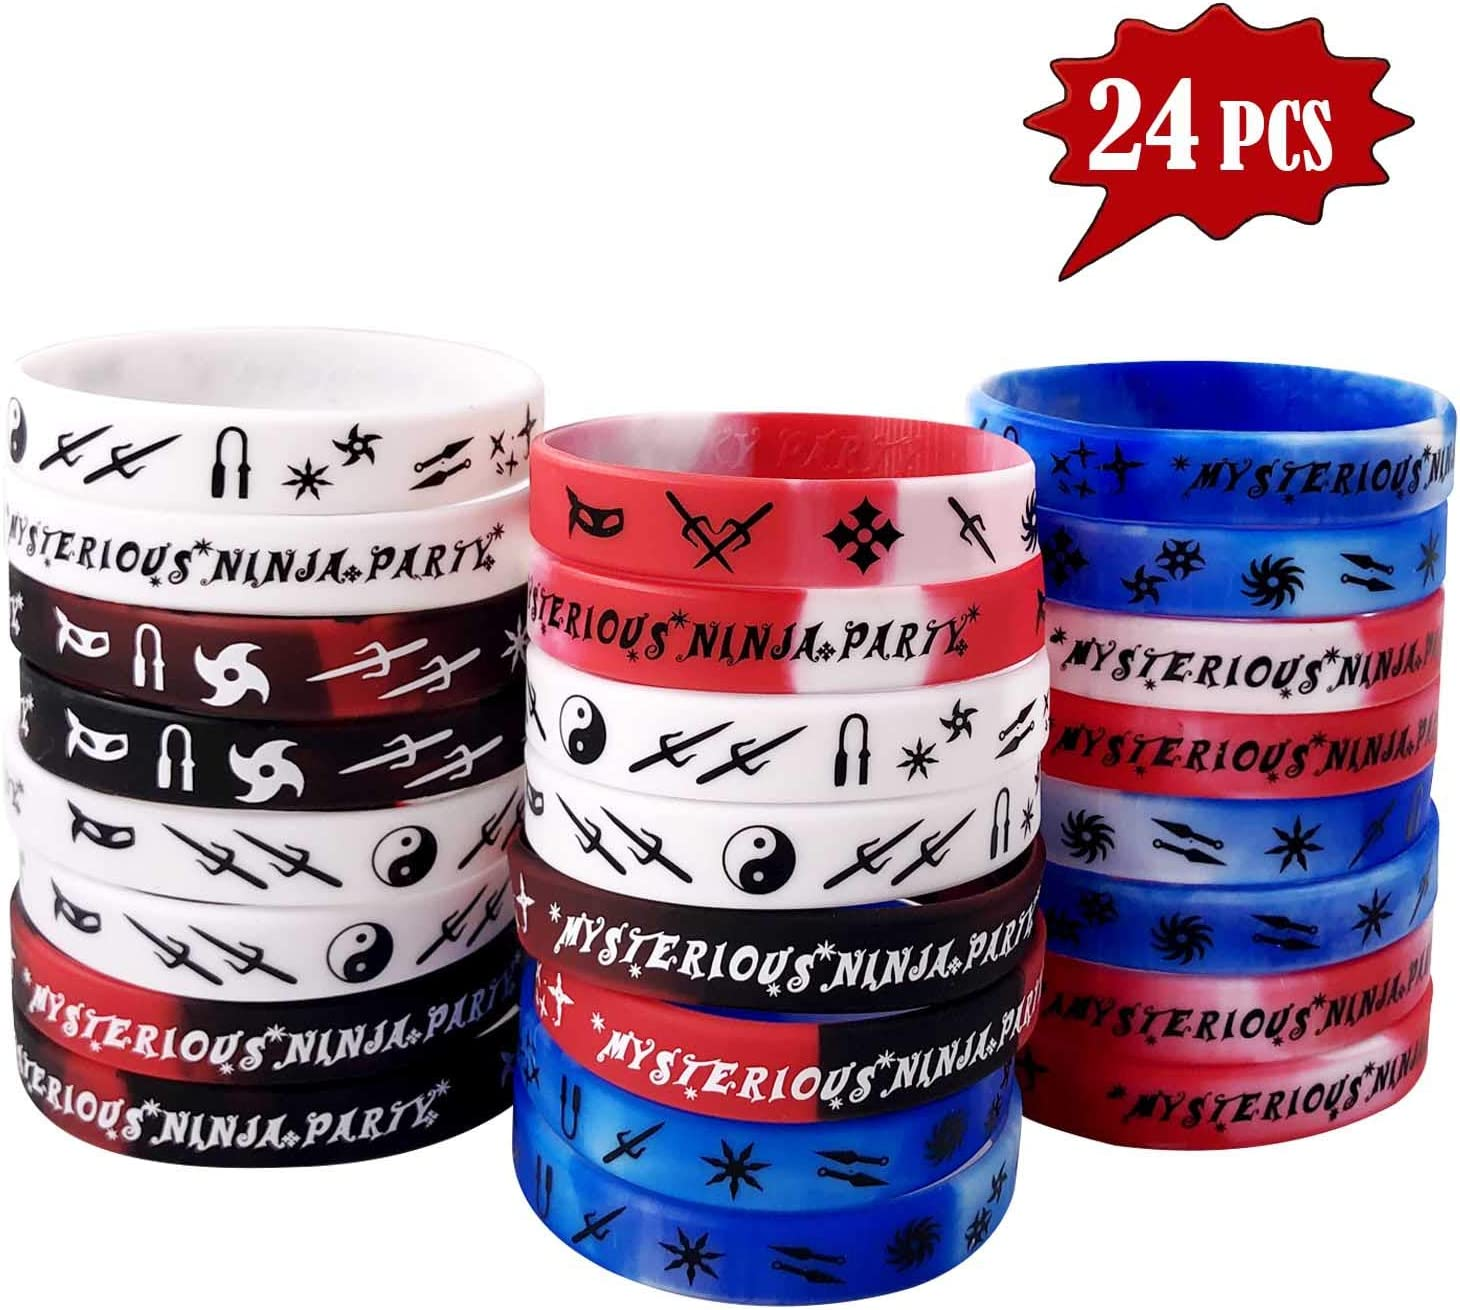 Diriway Ninja Master Silicone Bracelets Wristband-Ninja Party Special Recommended-Best for Ninja Warrior Birthday Party Theme! Interesting Silicone Bracelets Wristband (24 Groups-4 Colors)